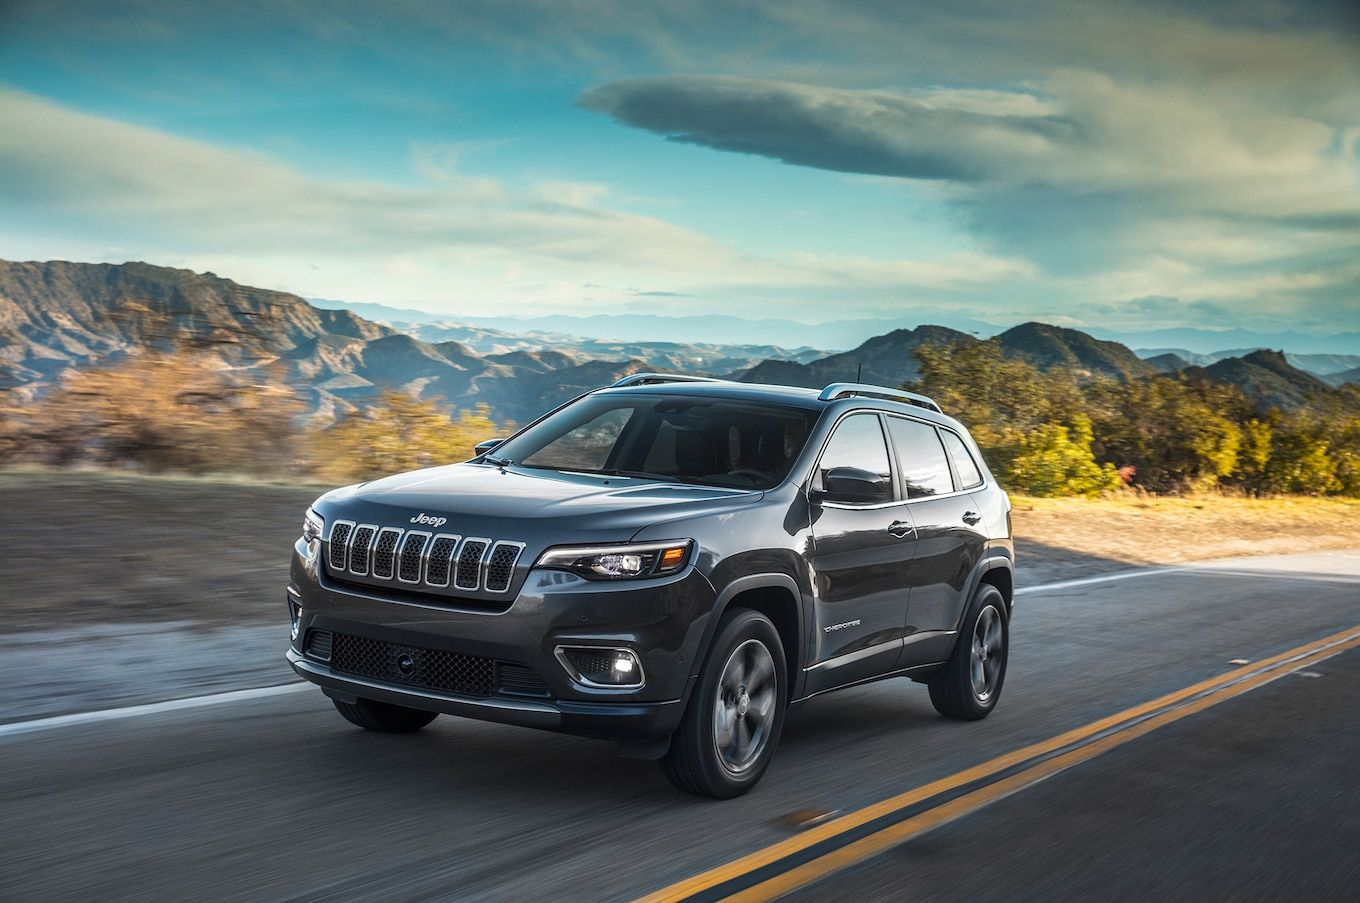 2019 Vs 2020 Jeep Grand Cherokee Changes And Price En 2020 This